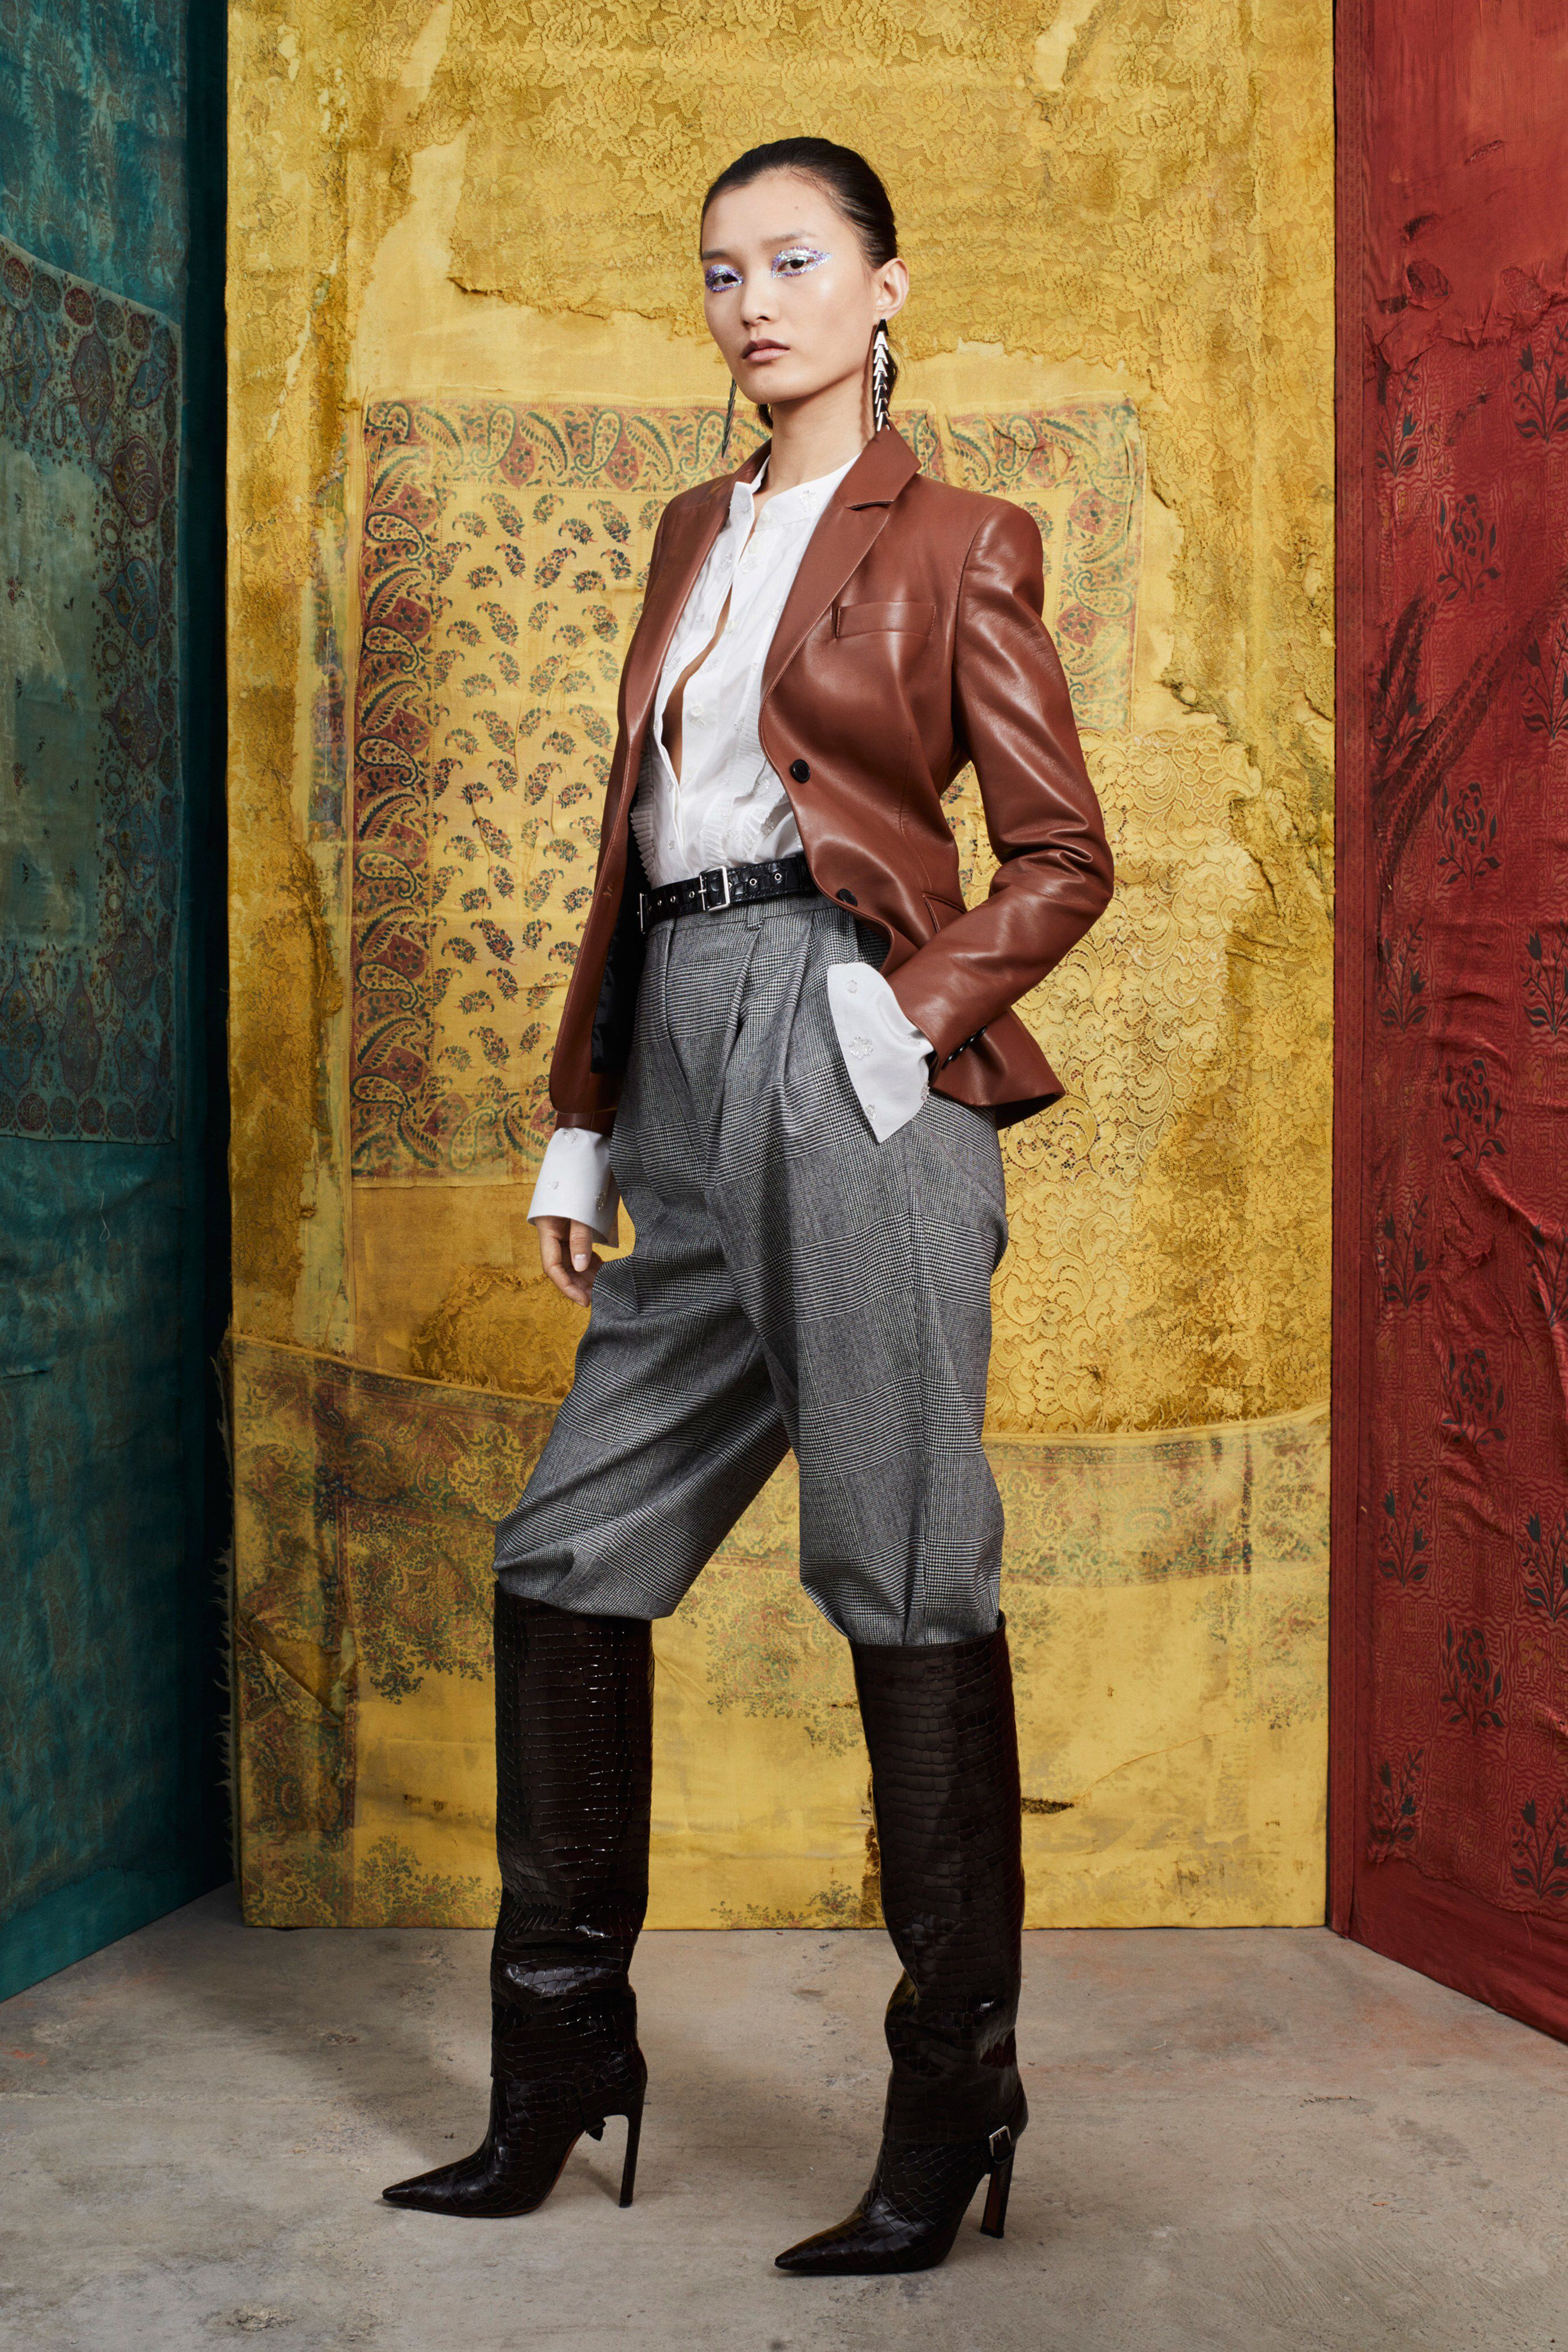 b73fc2d0dcb9f9 Altuzarra Pre-Fall 2019 Fashion Show Collection  See the complete Altuzarra  Pre-Fall 2019 collection. Look 14